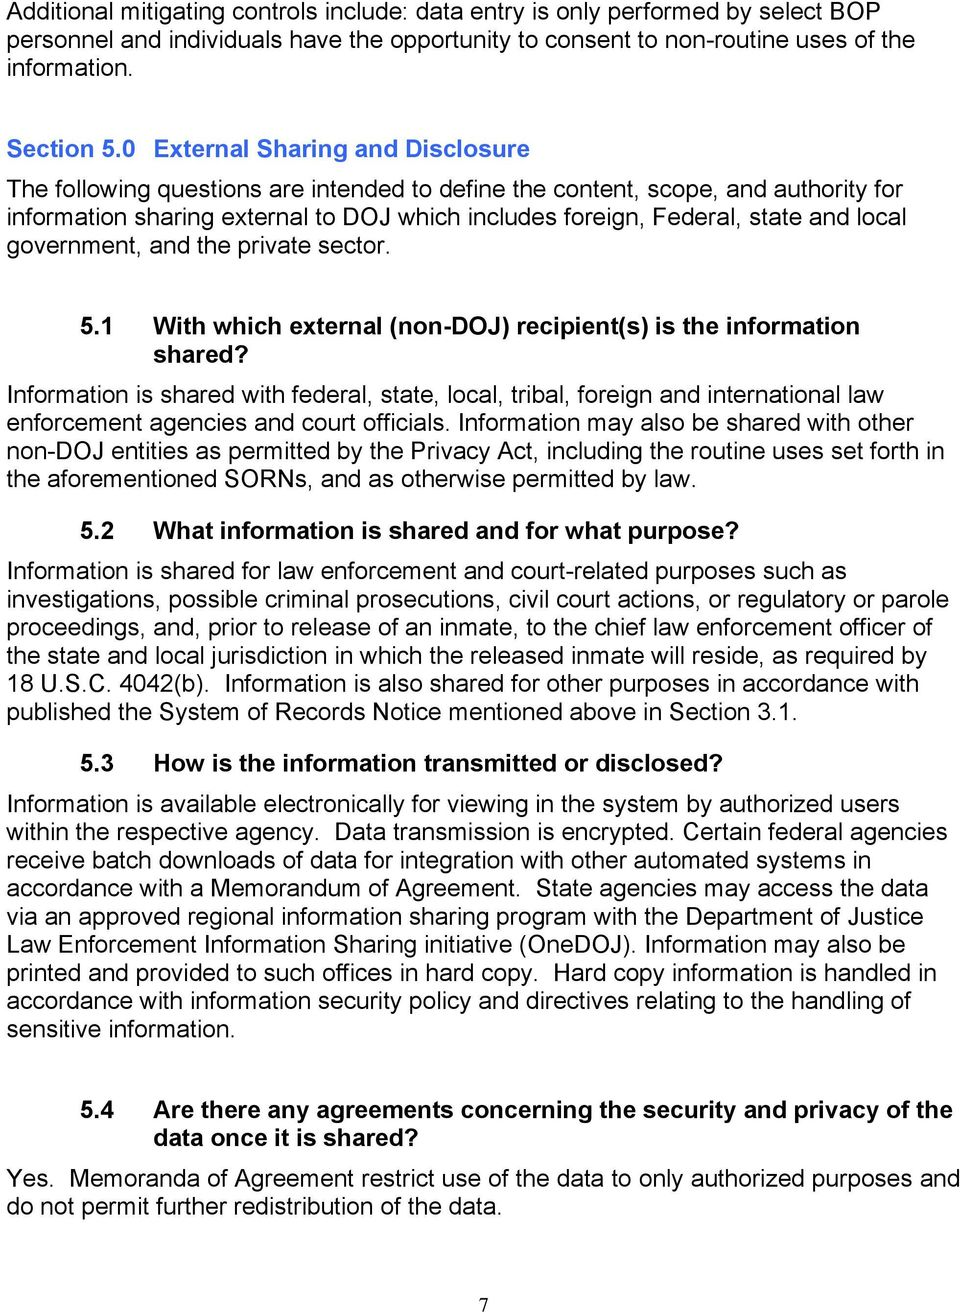 local government, and the private sector. 5.1 With which external (non-doj) recipient(s) is the information shared?